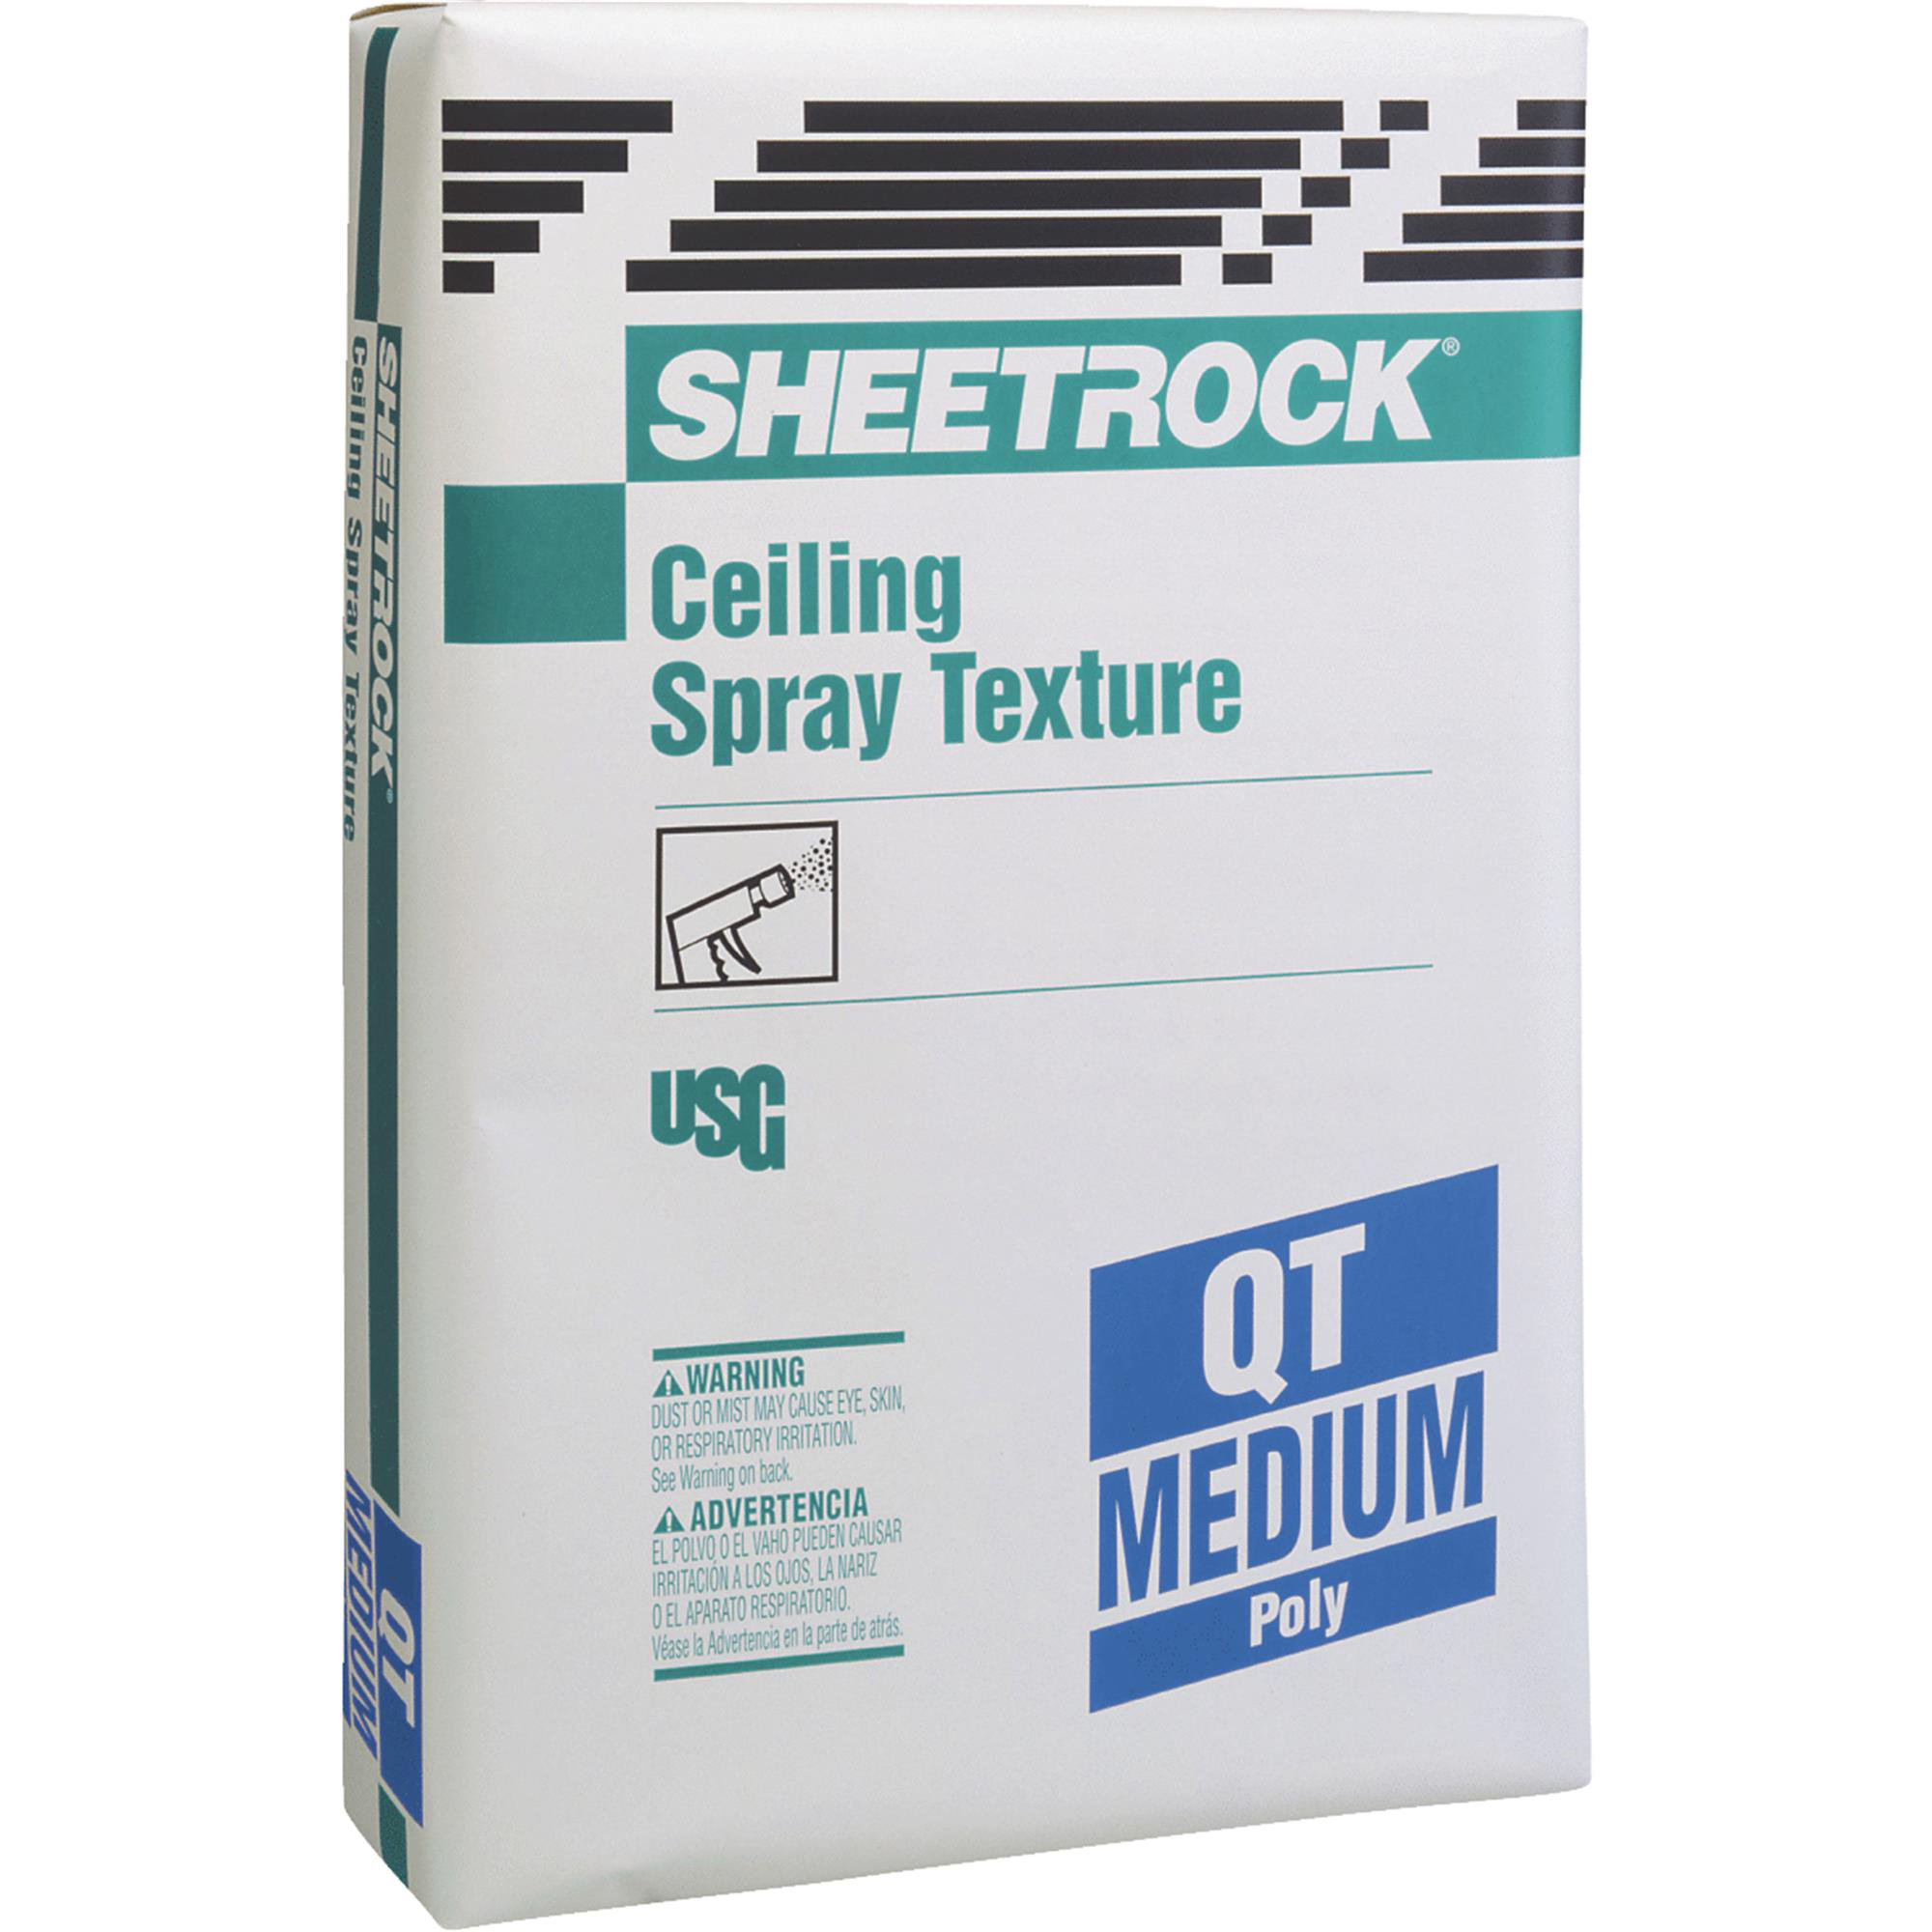 Sheetrock QT Aggregate Ceiling Spray Texture